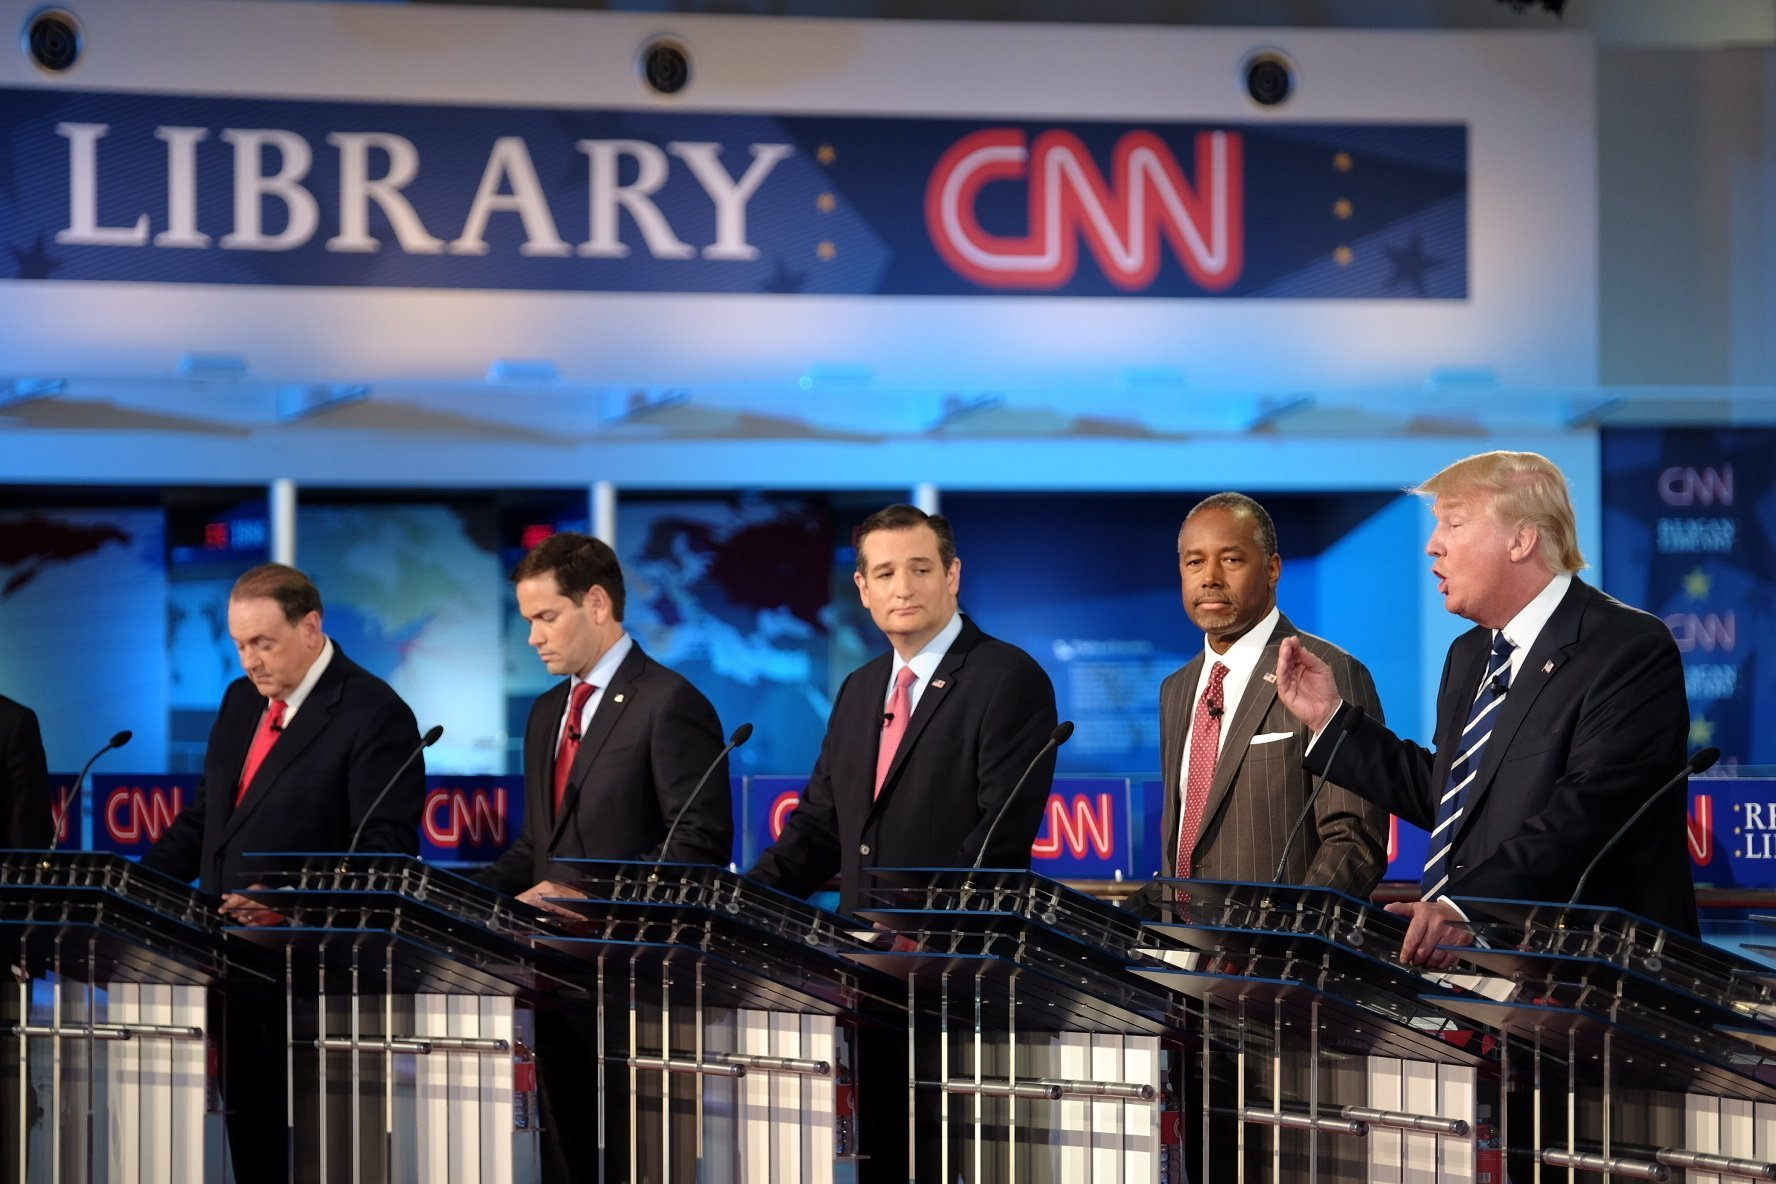 Three hours and 11 candidates later, the big winners for the CN Republican Presidental Debate include Carly Fiorina, Marco Rubio and Chris Christie. FILE -- Donald Trump responds to a question at the CNN Republican Presidential Debate in Simi Valley, California on September 16, 2015.